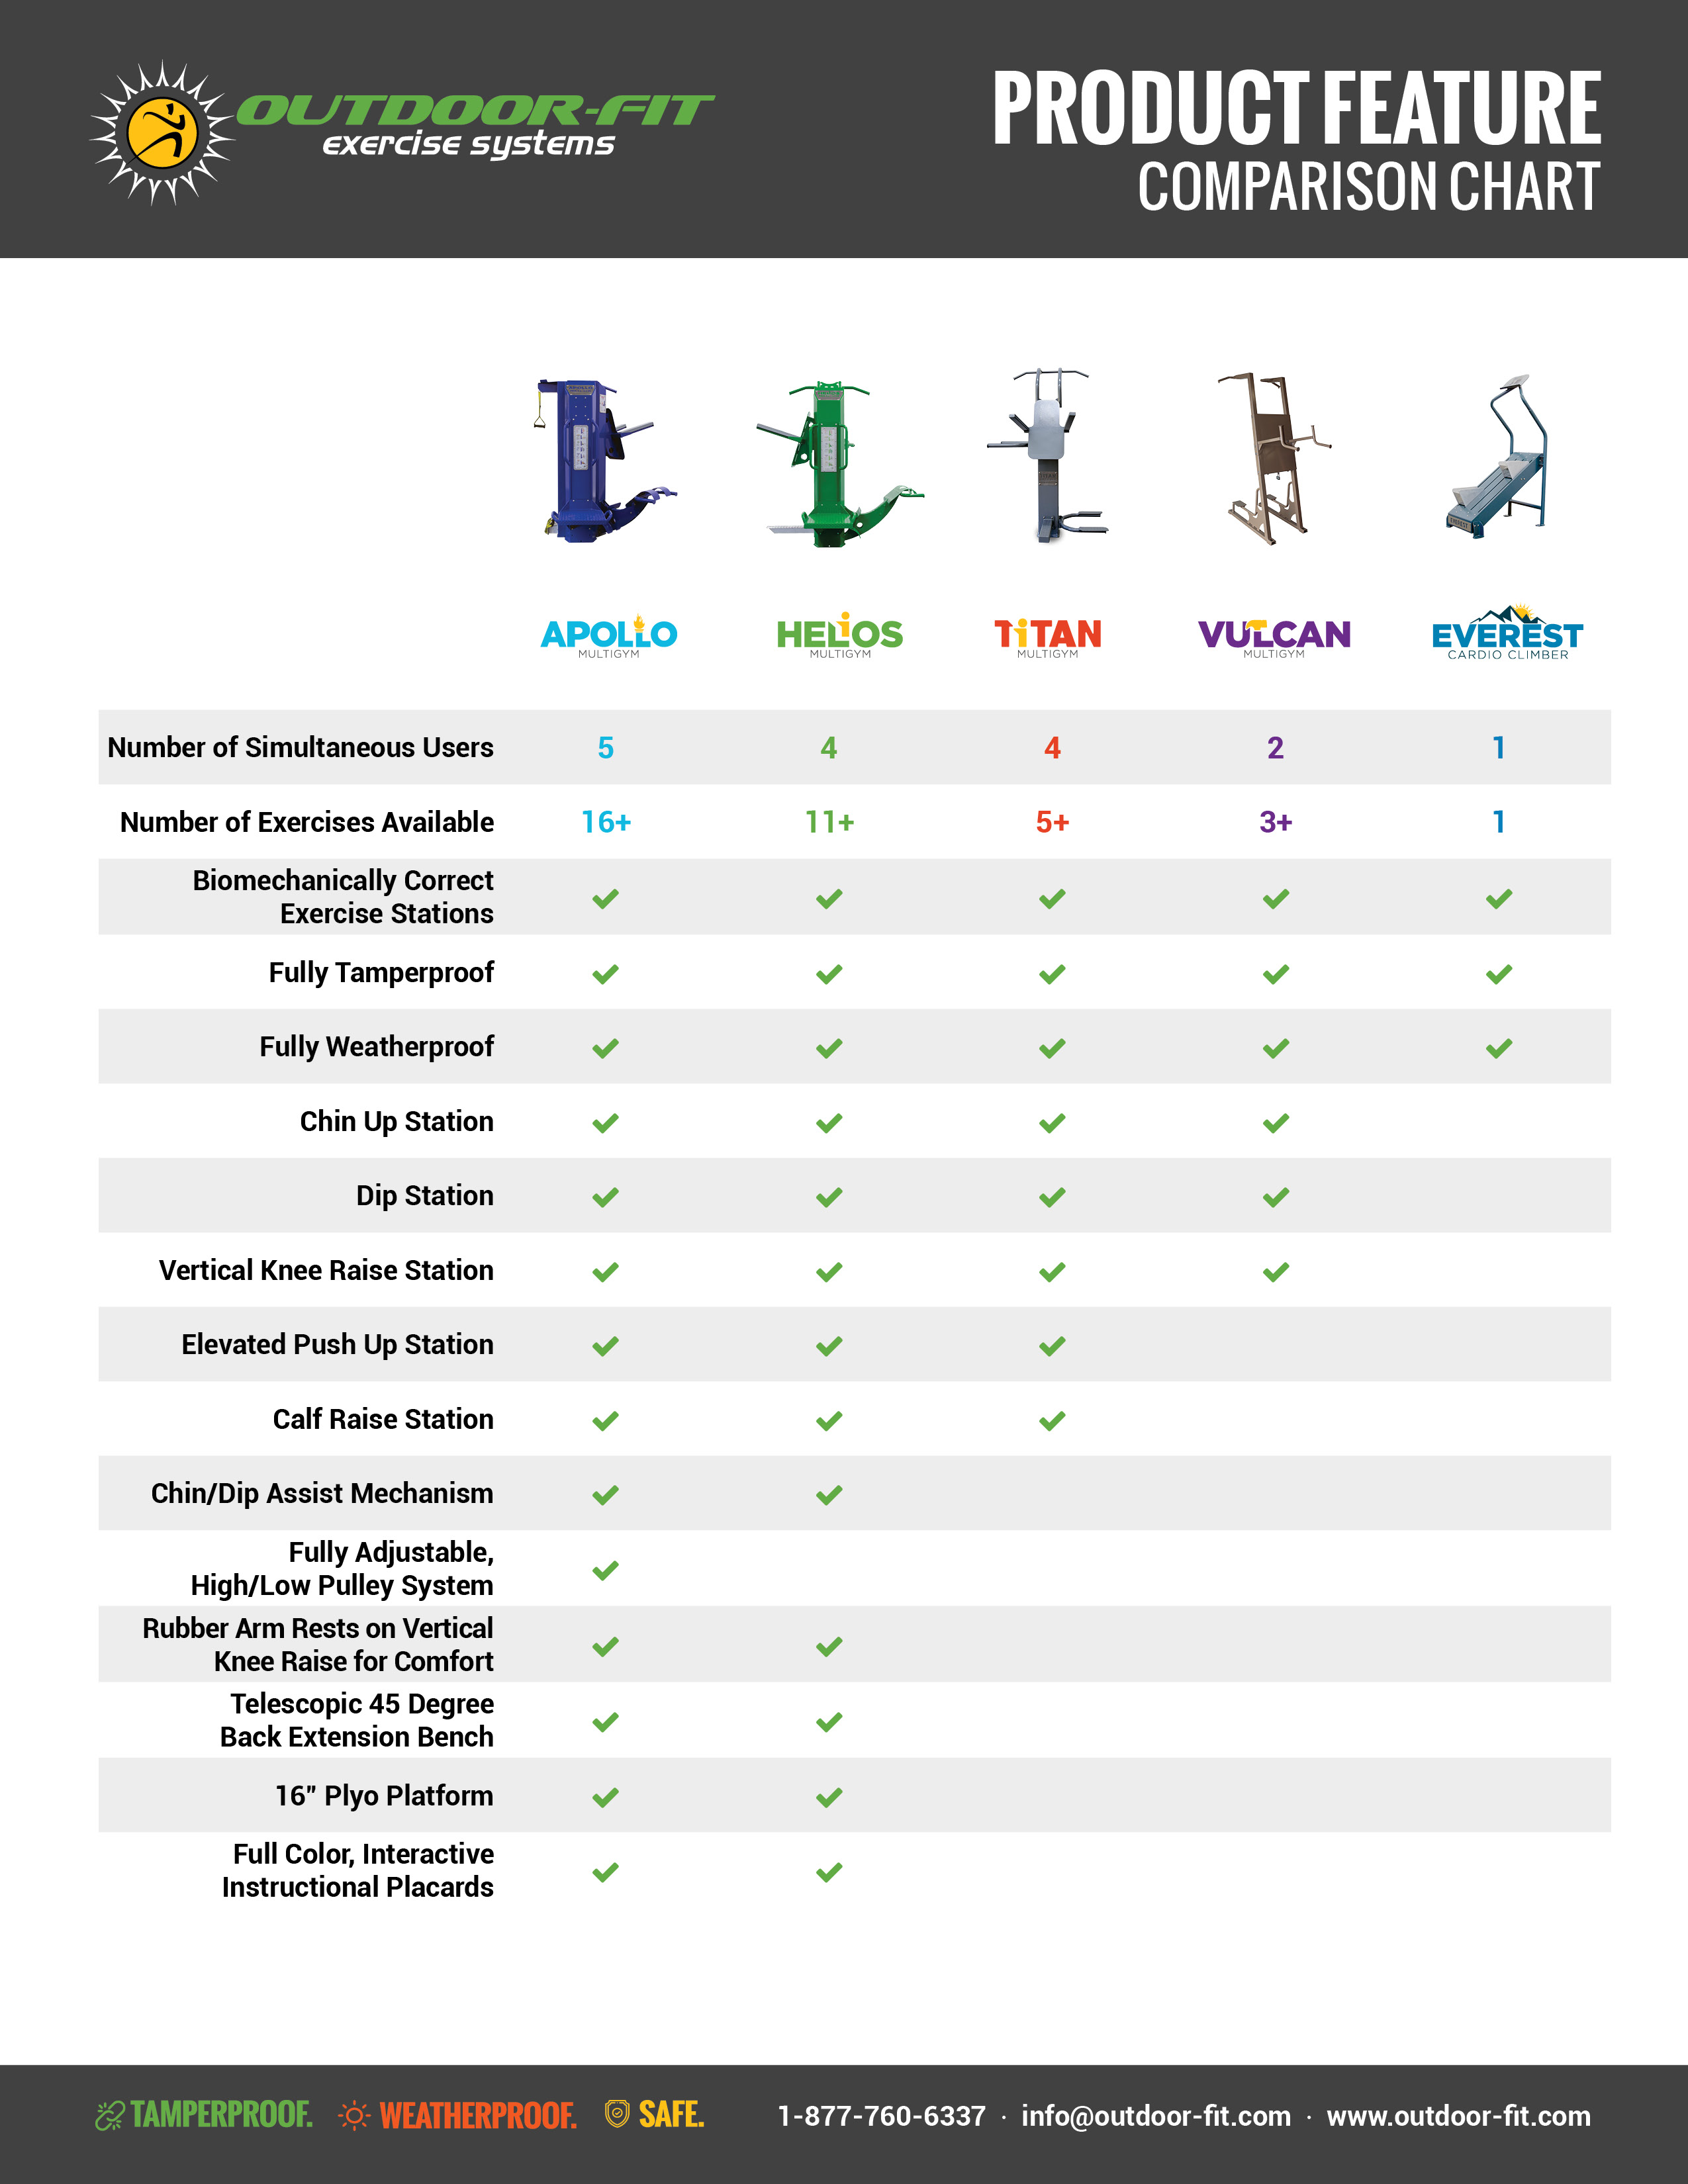 Outdoor-Fit Product Comparison chart